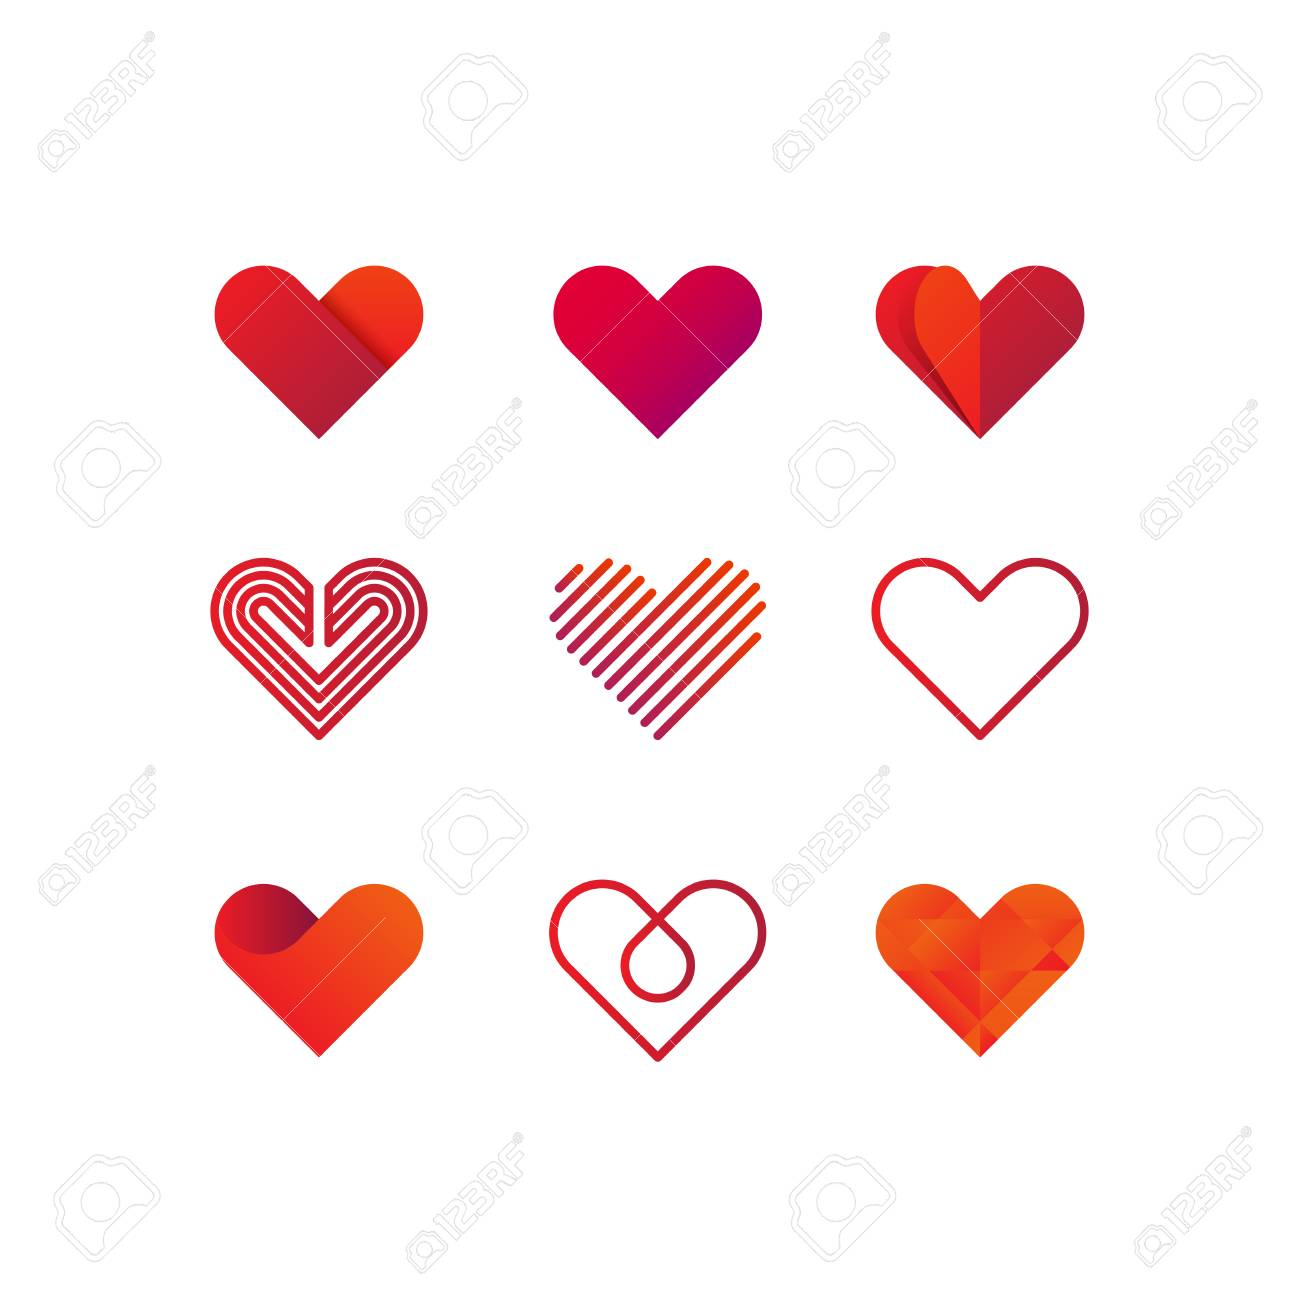 Heart Logo Vector Heart Logo Jpeg Heart Logo Object Heart